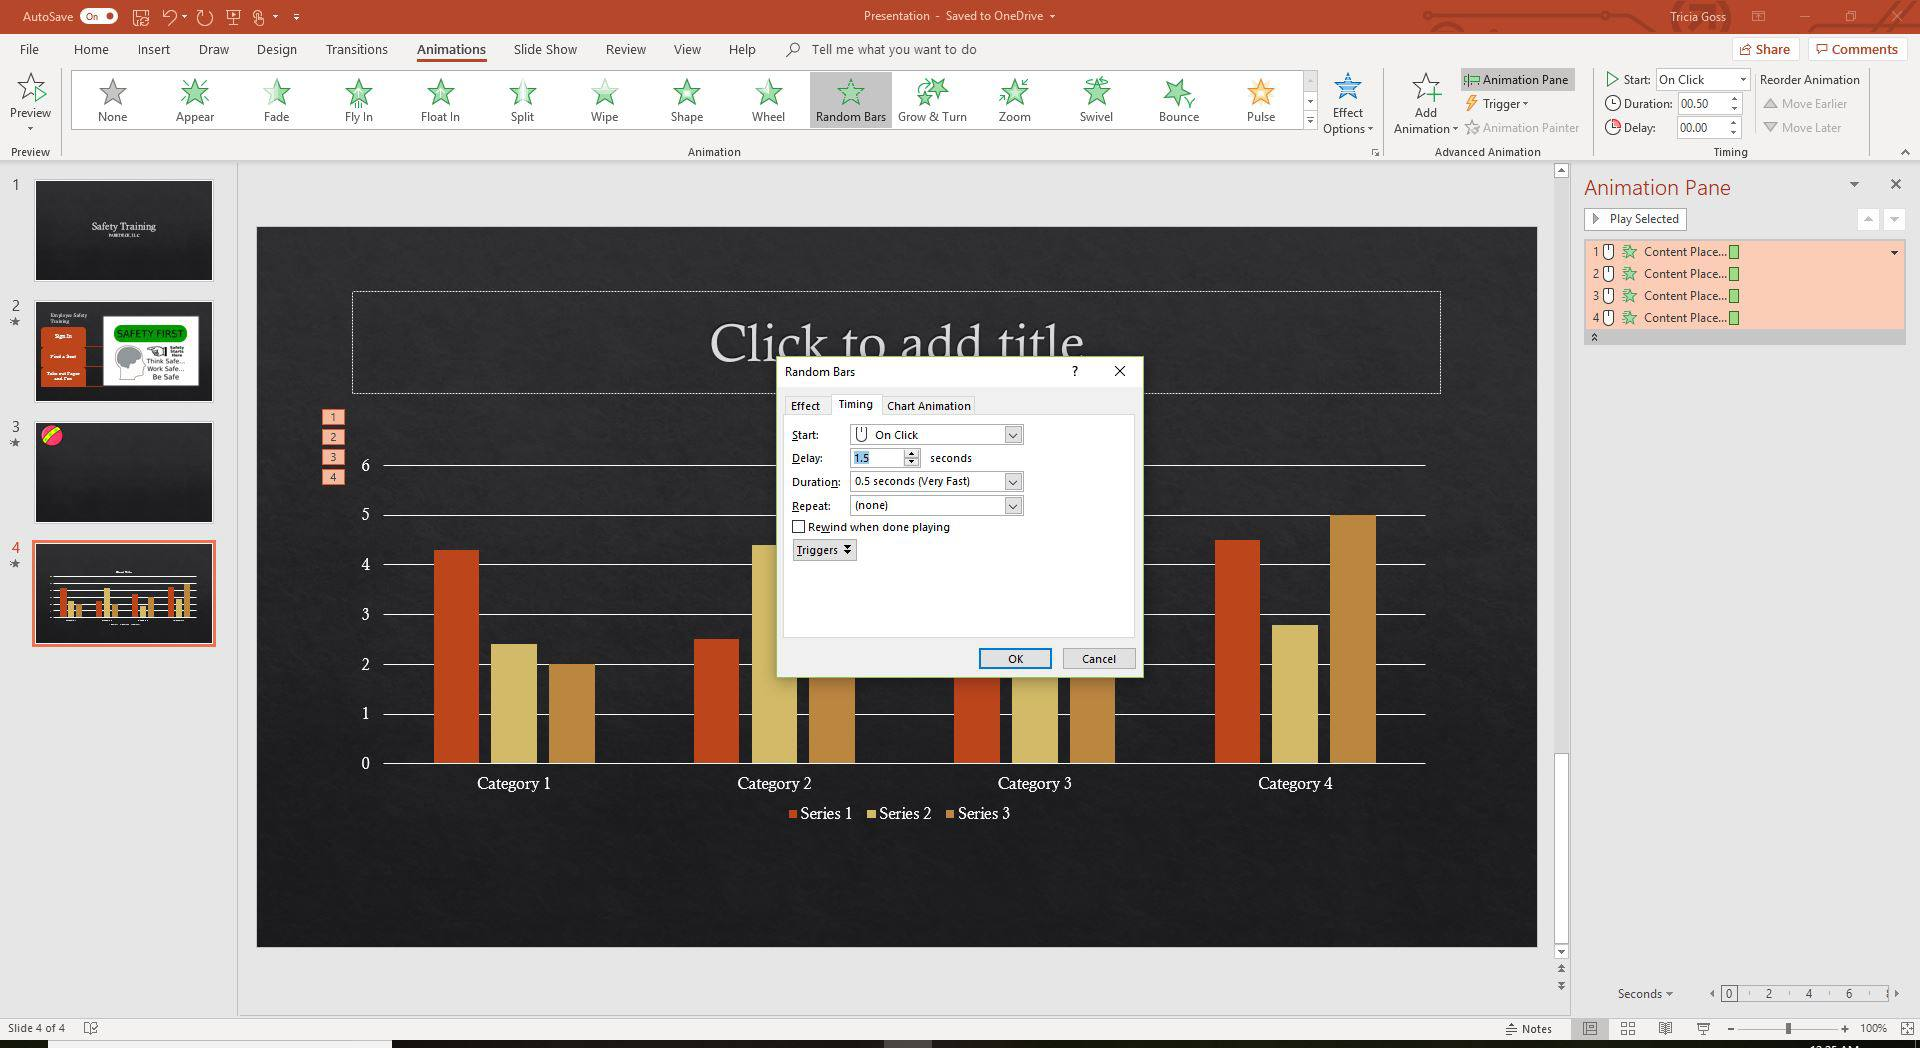 A screenshot of the Chart animation timing feature in PowerPoint.